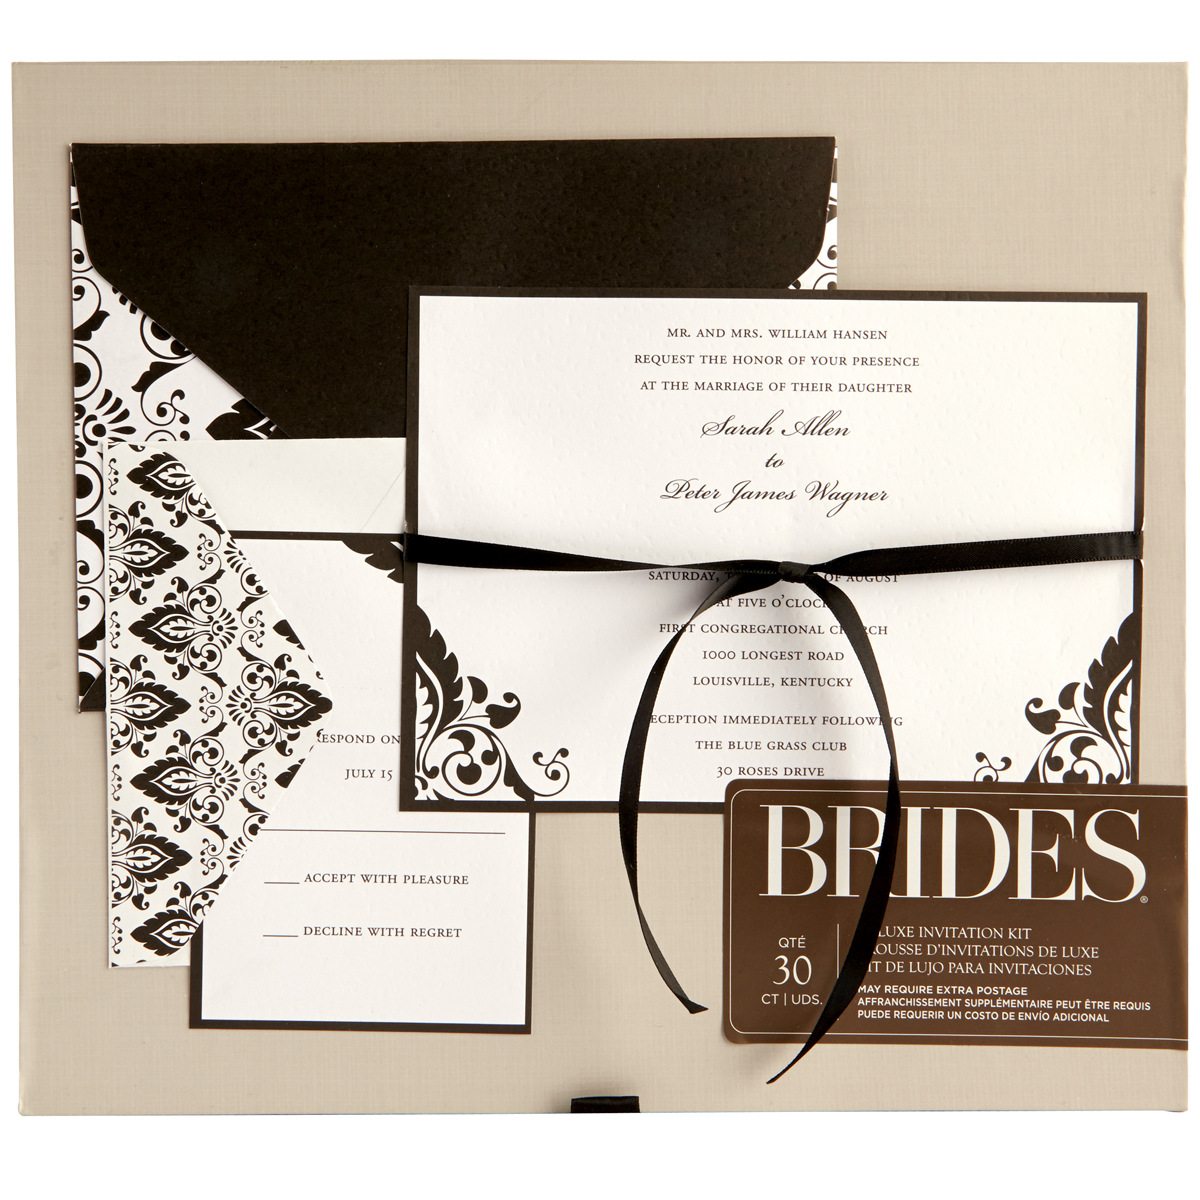 103695?fit=inside%7C540 540 michaels crafts wedding invitation kits wedding wedding,Michaels Crafts Invitations